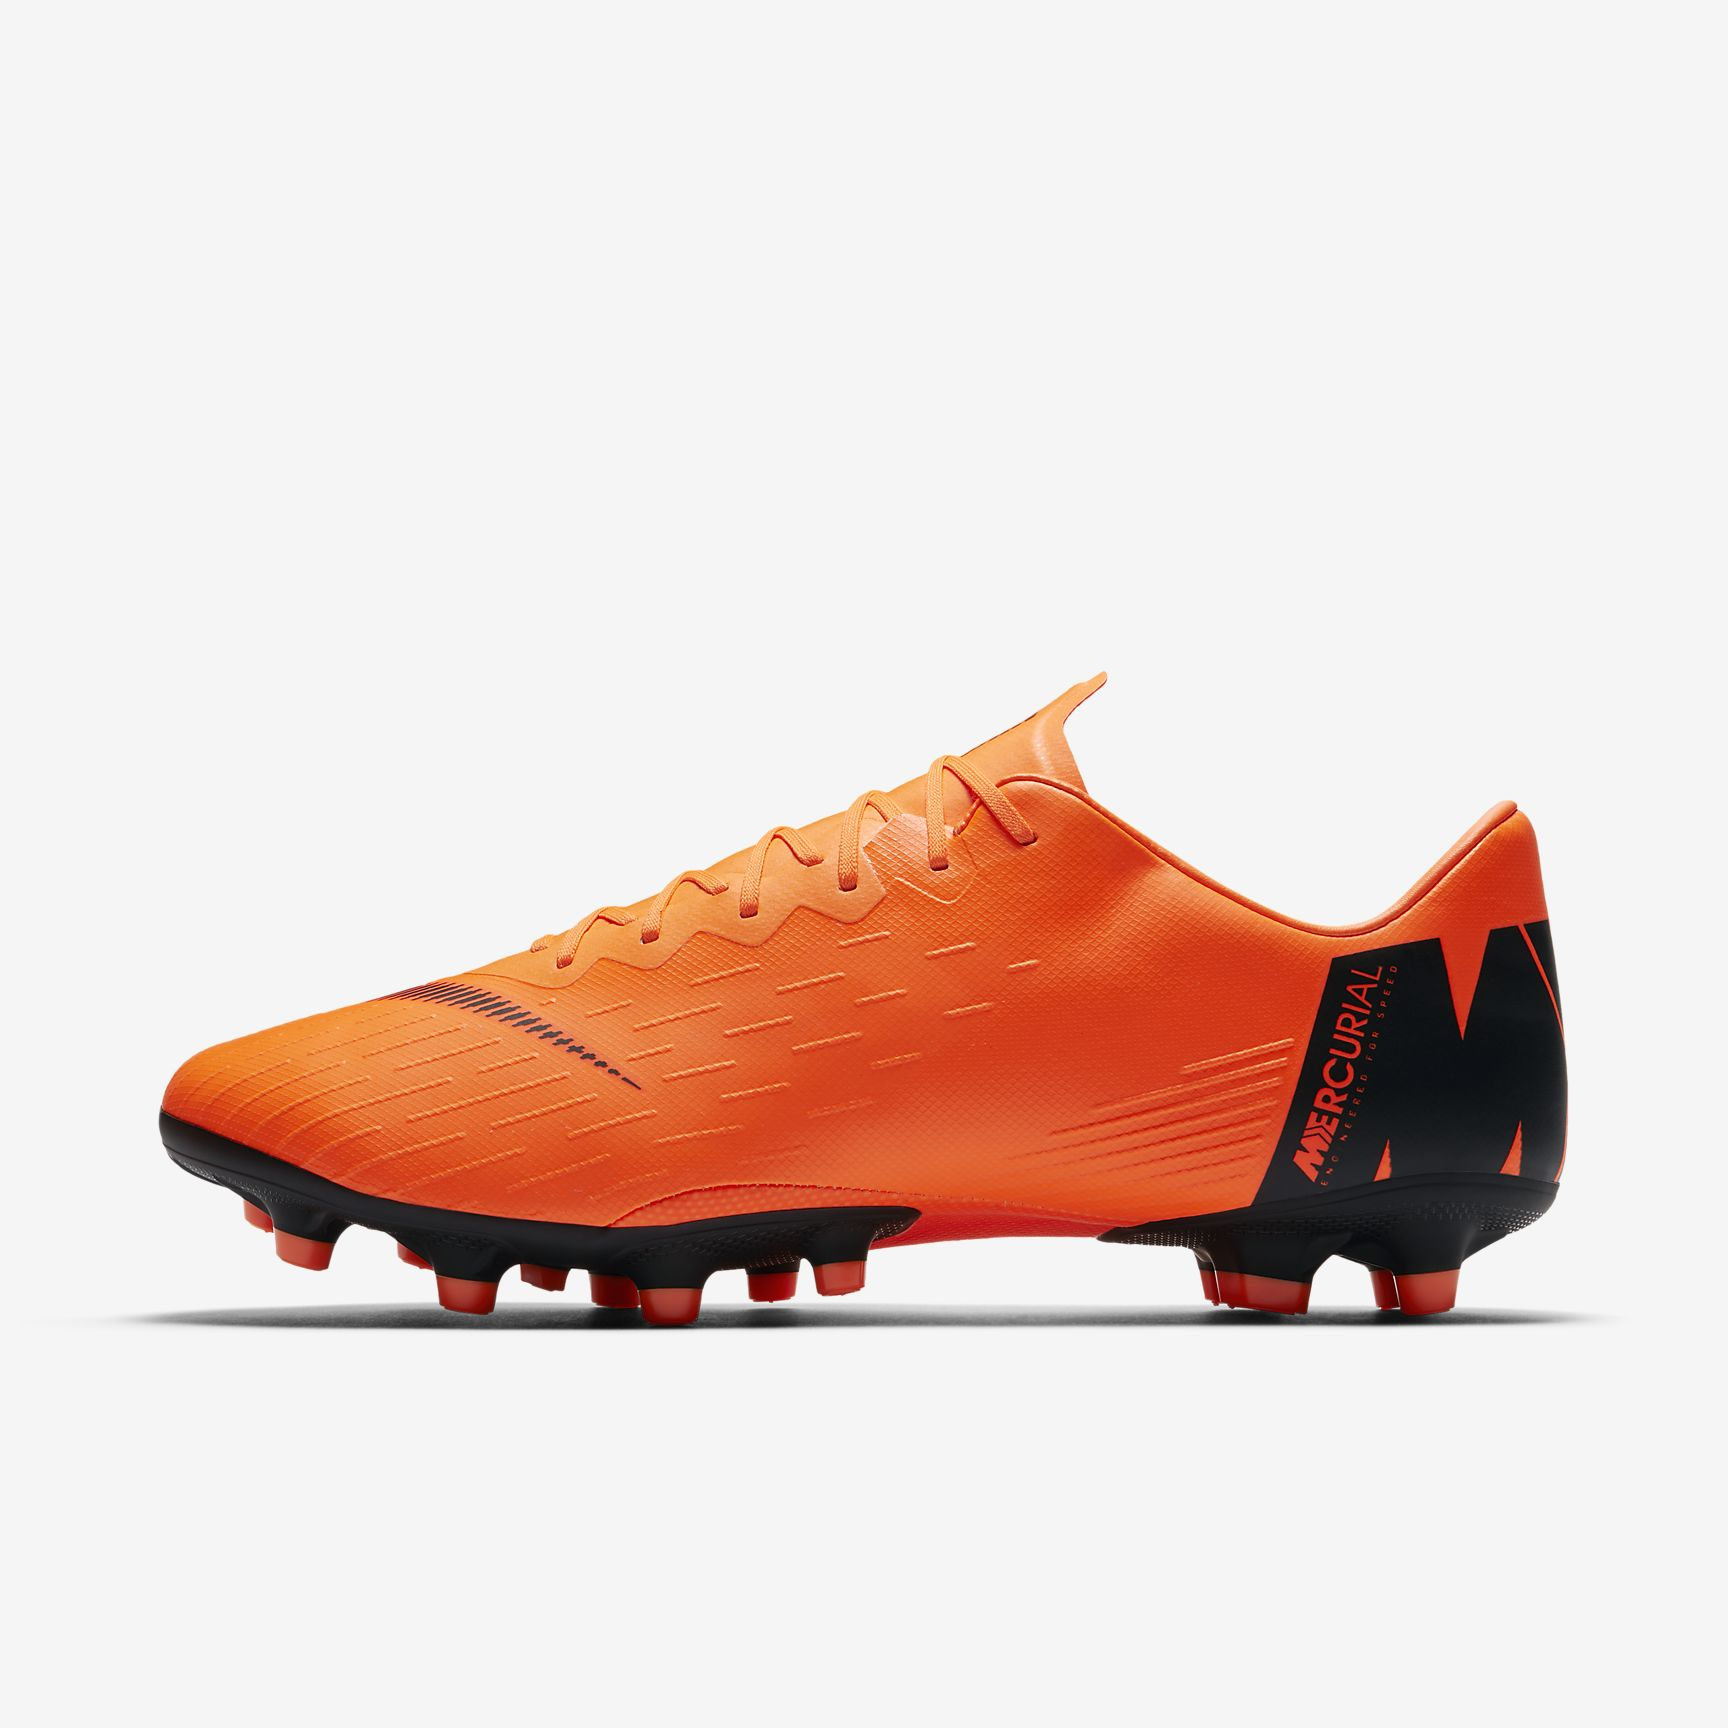 chaussures-football-Nike-Mercurial-Vapor-XII-Pro-img1